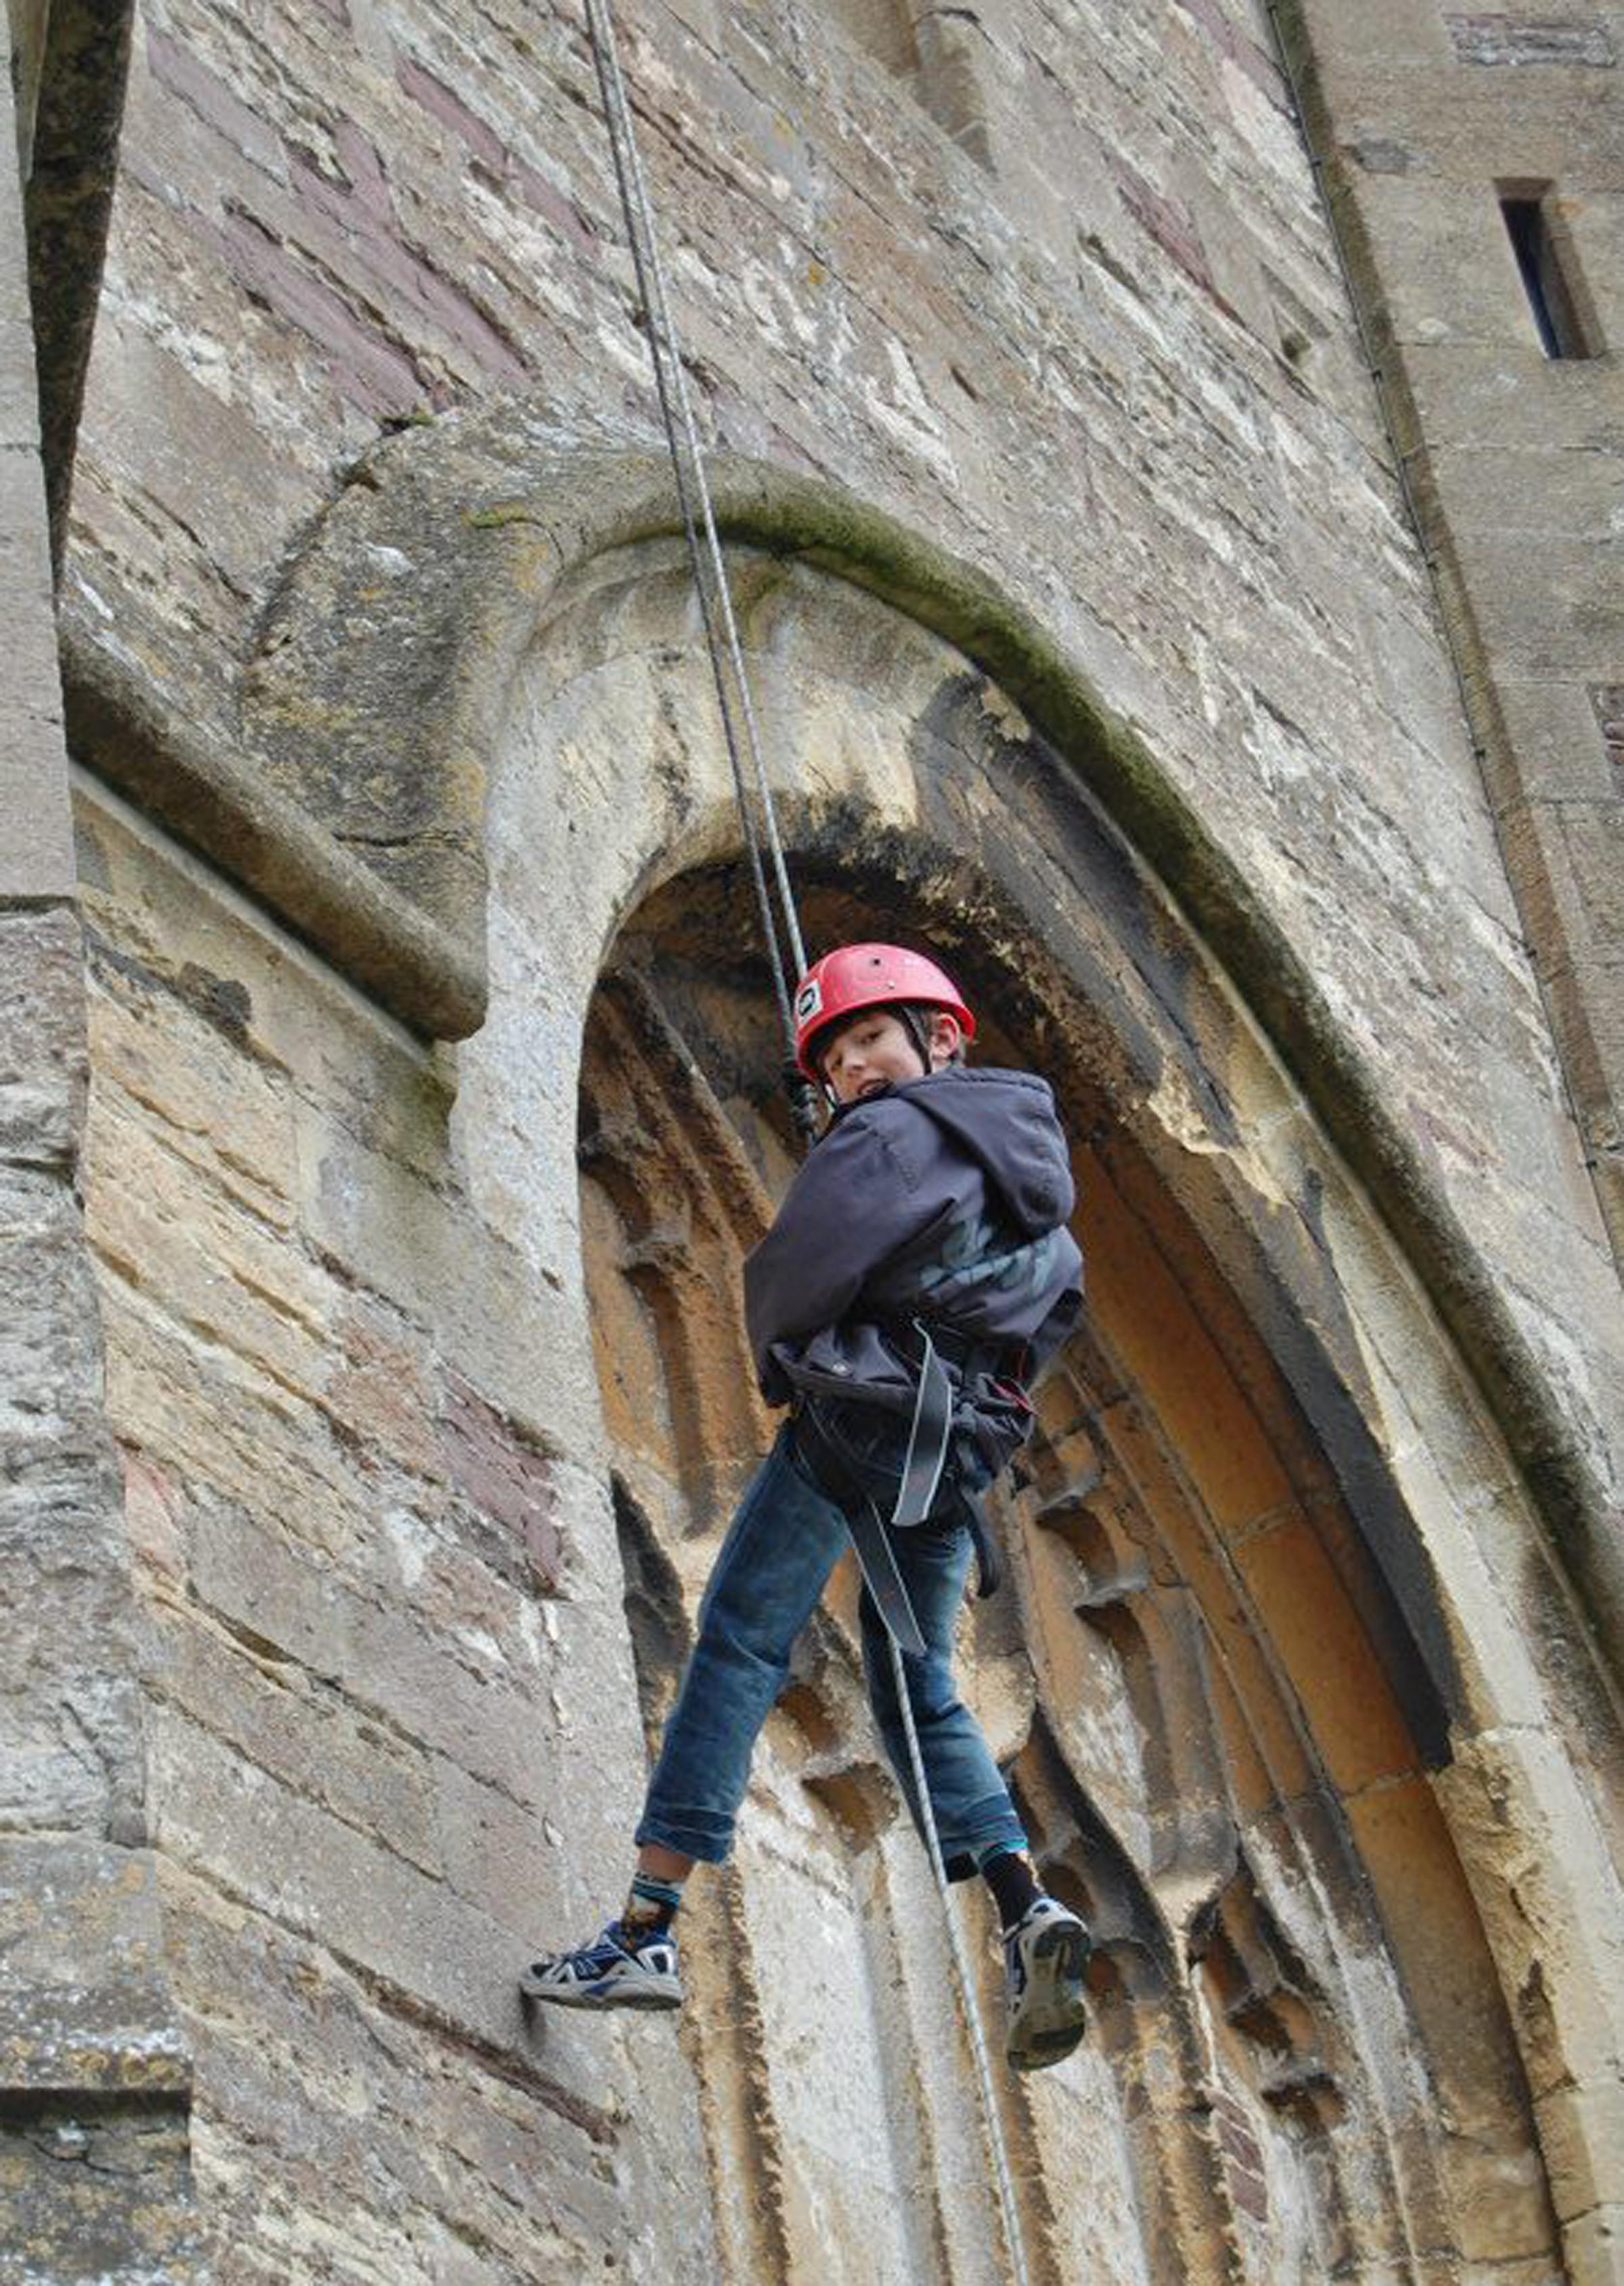 Micah Ebbs abseiling down the bell tower in Thornbury last year (4206683)